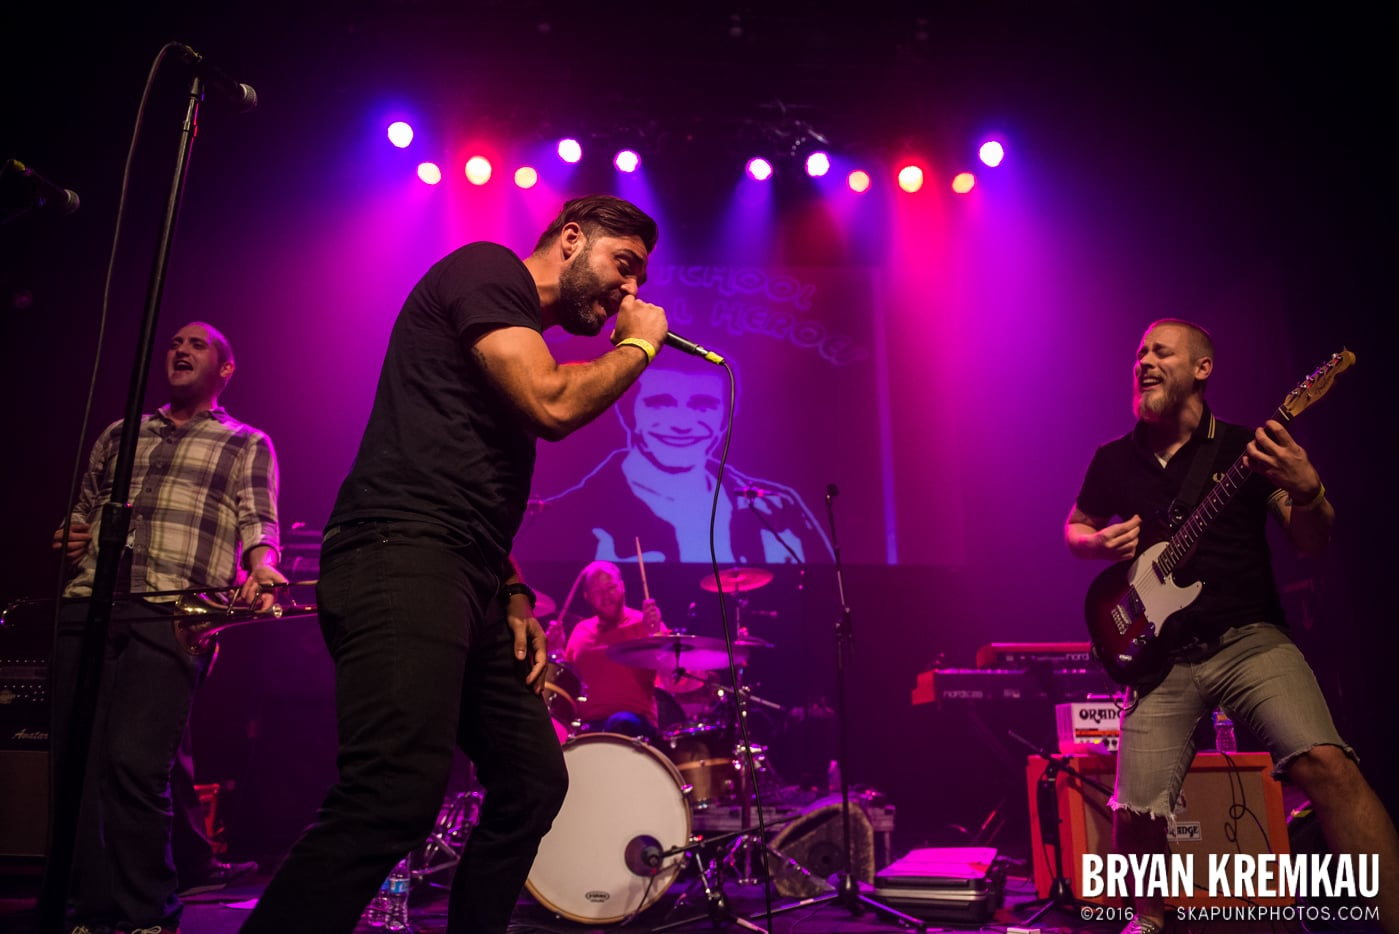 High School Football Heroes @ Gramercy Theatre, NYC - 10.6.16 (24)